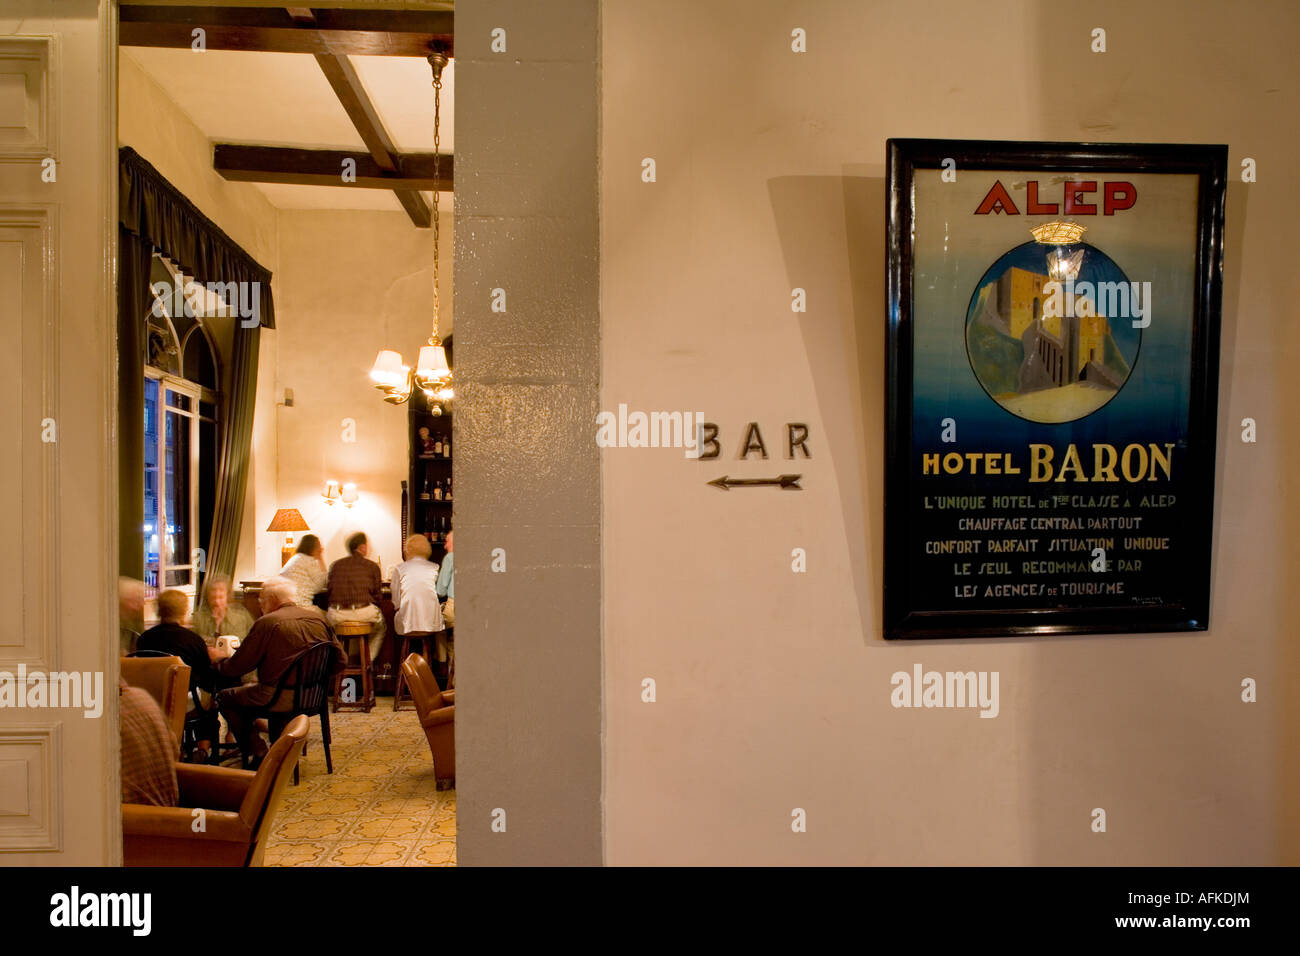 The bar at the Baron Hotel, Aleppo, Syria, favourite haunt of TE Lawrence - Stock Image